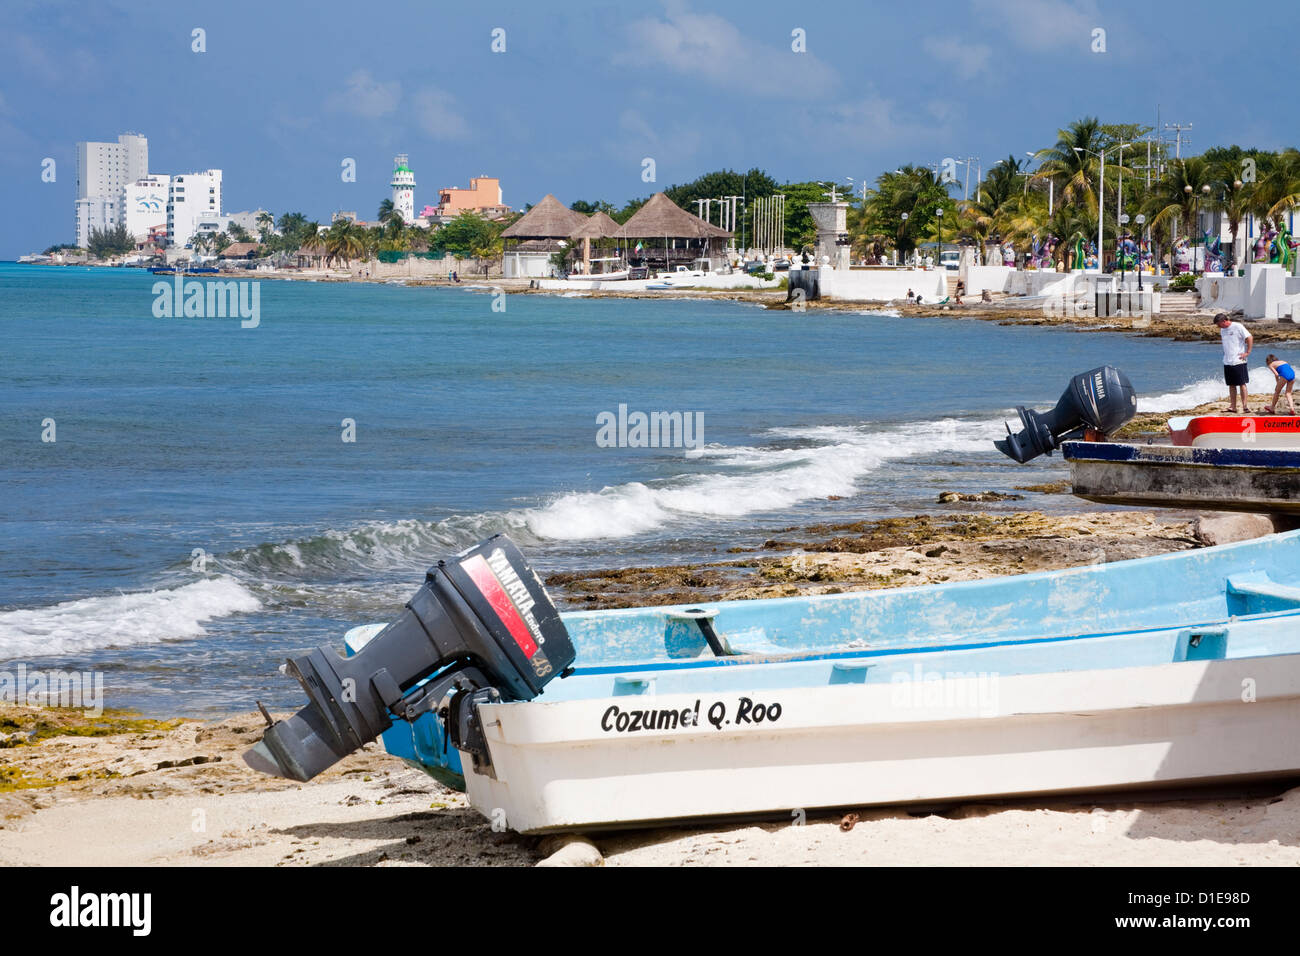 San Miguel waterfront, Cozumel Island, Quintana Roo, Mexico, North America - Stock Image